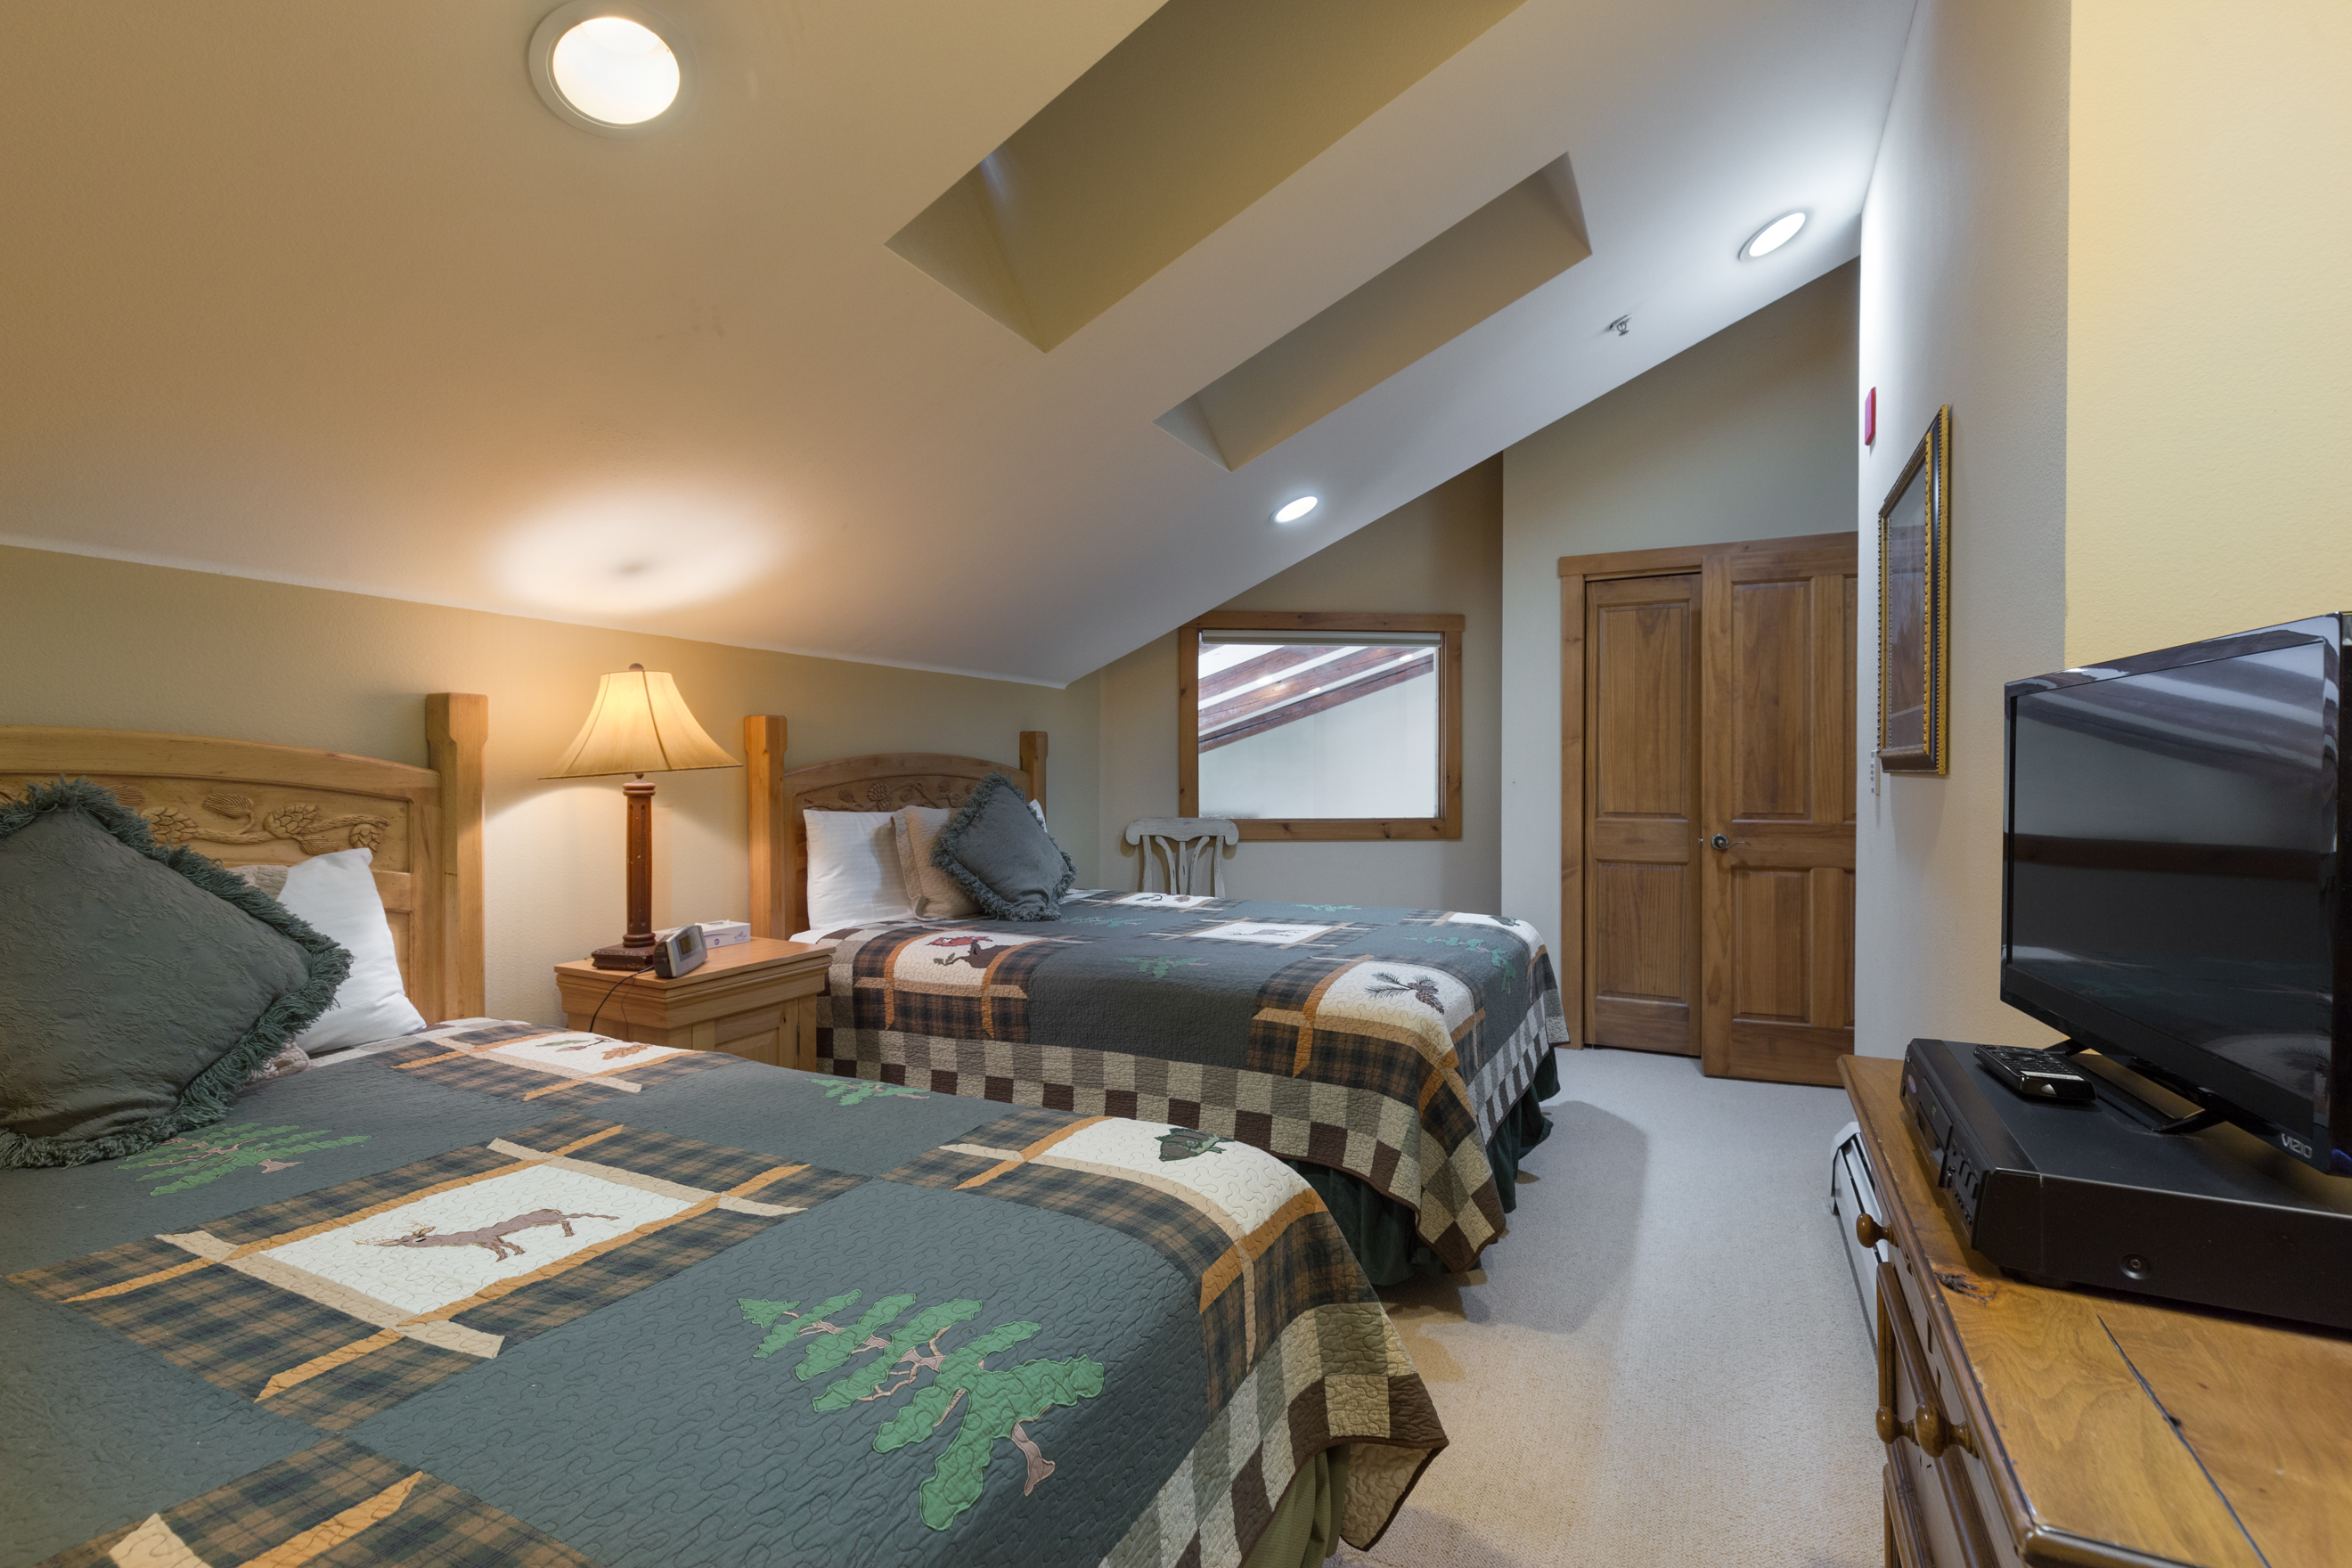 The fifth bedroom upstairs features two queen-sized beds and a flat screen TV as well as skylights.